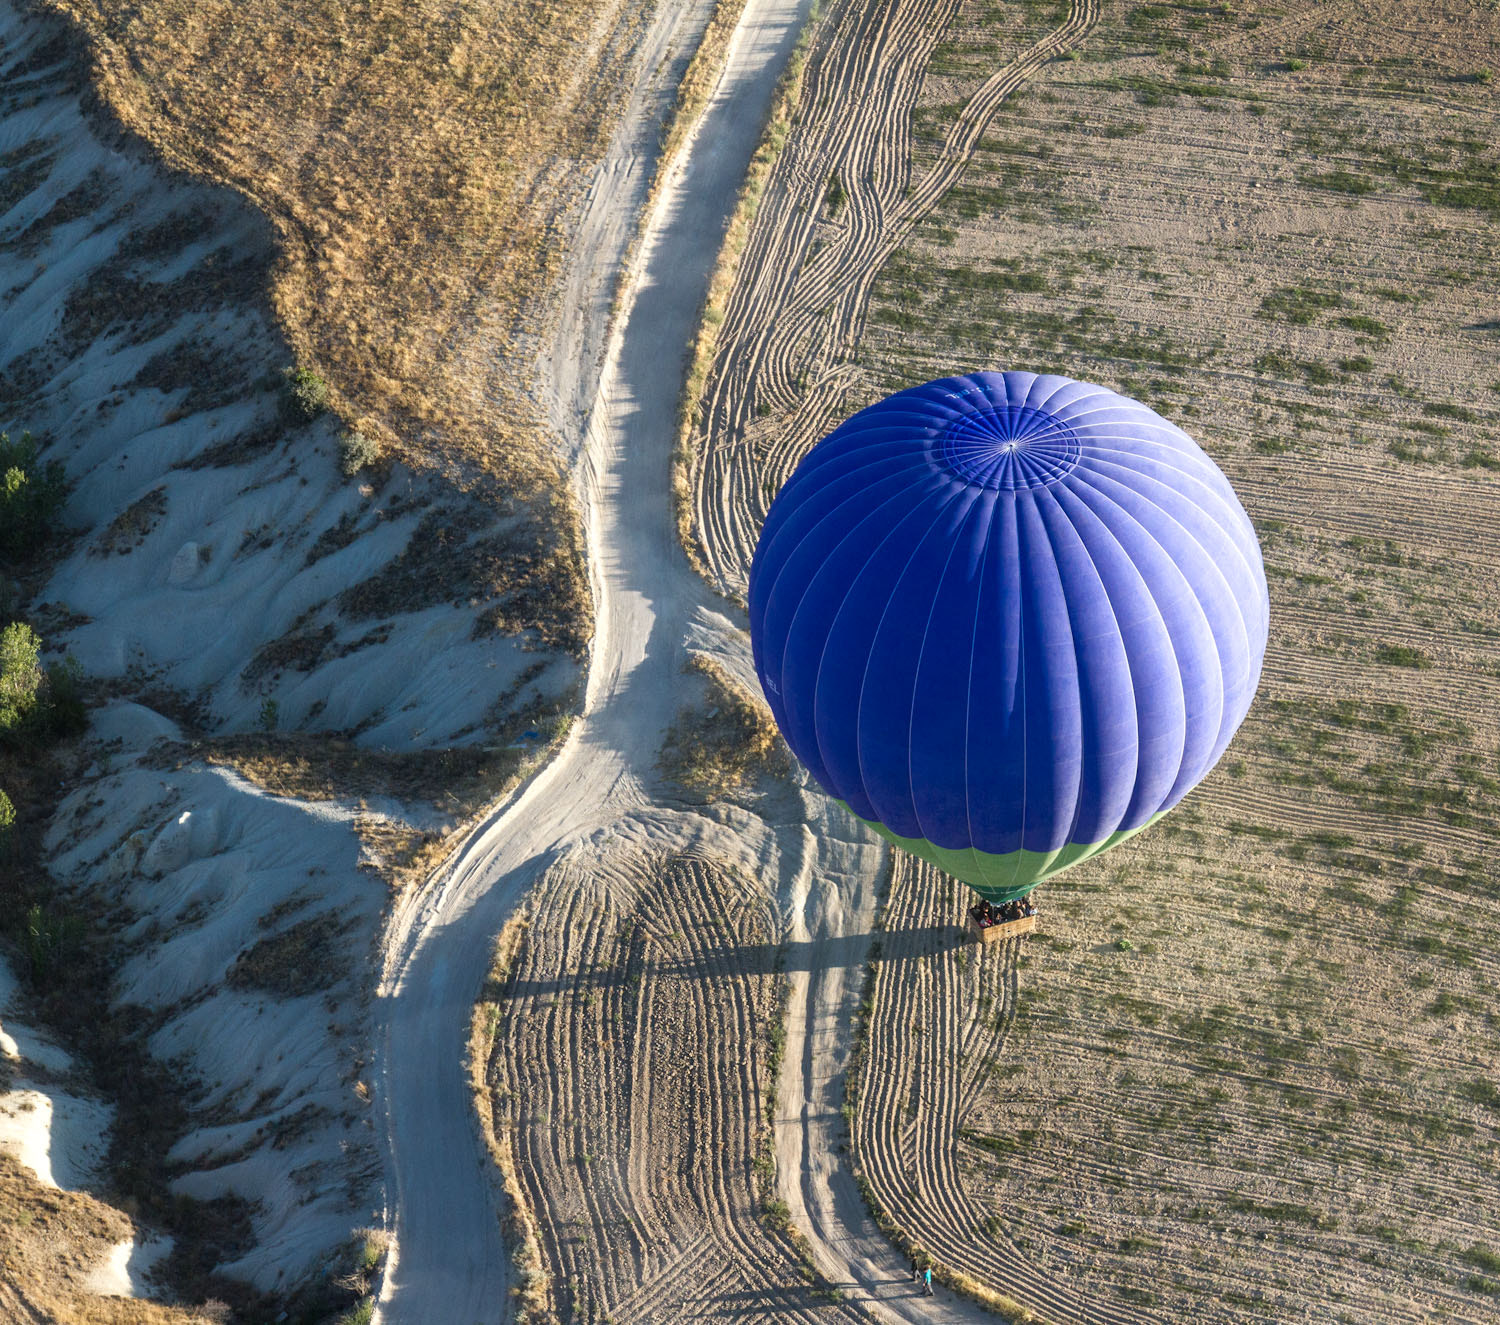 Photograph Balloon trip by Jens-Chr. Strandos on 500px